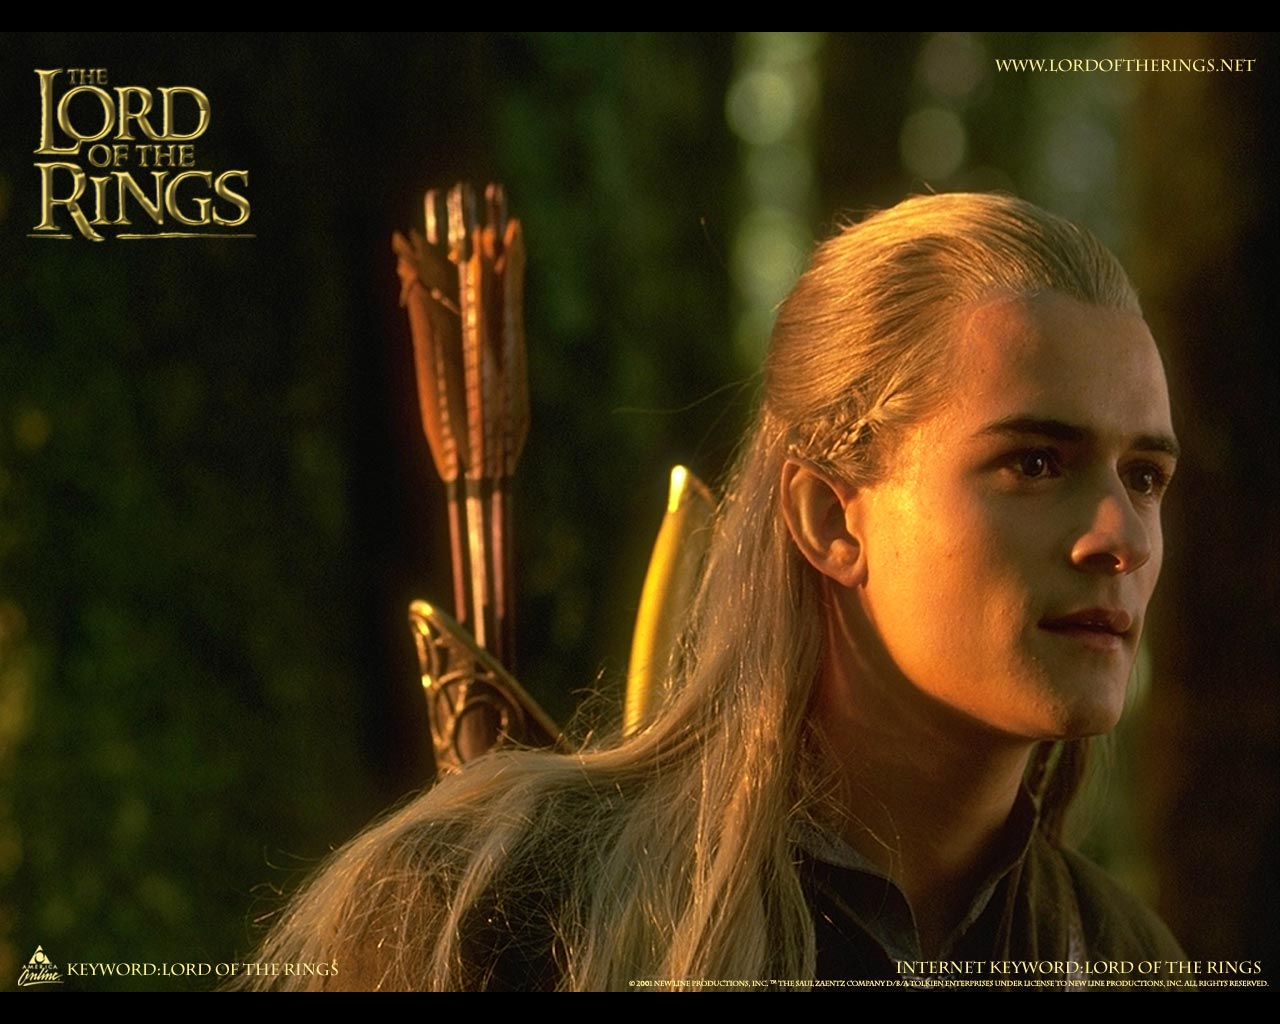 http://4.bp.blogspot.com/-aX3wlPsURfY/T_T0DMWC_AI/AAAAAAAAAFQ/TxiL_ExHgUY/s1600/Orlando_Bloom_in_Lord_of_the_Rings+_The_Fellowship_of_the_Ring_Wallpaper_23_1280.jpg